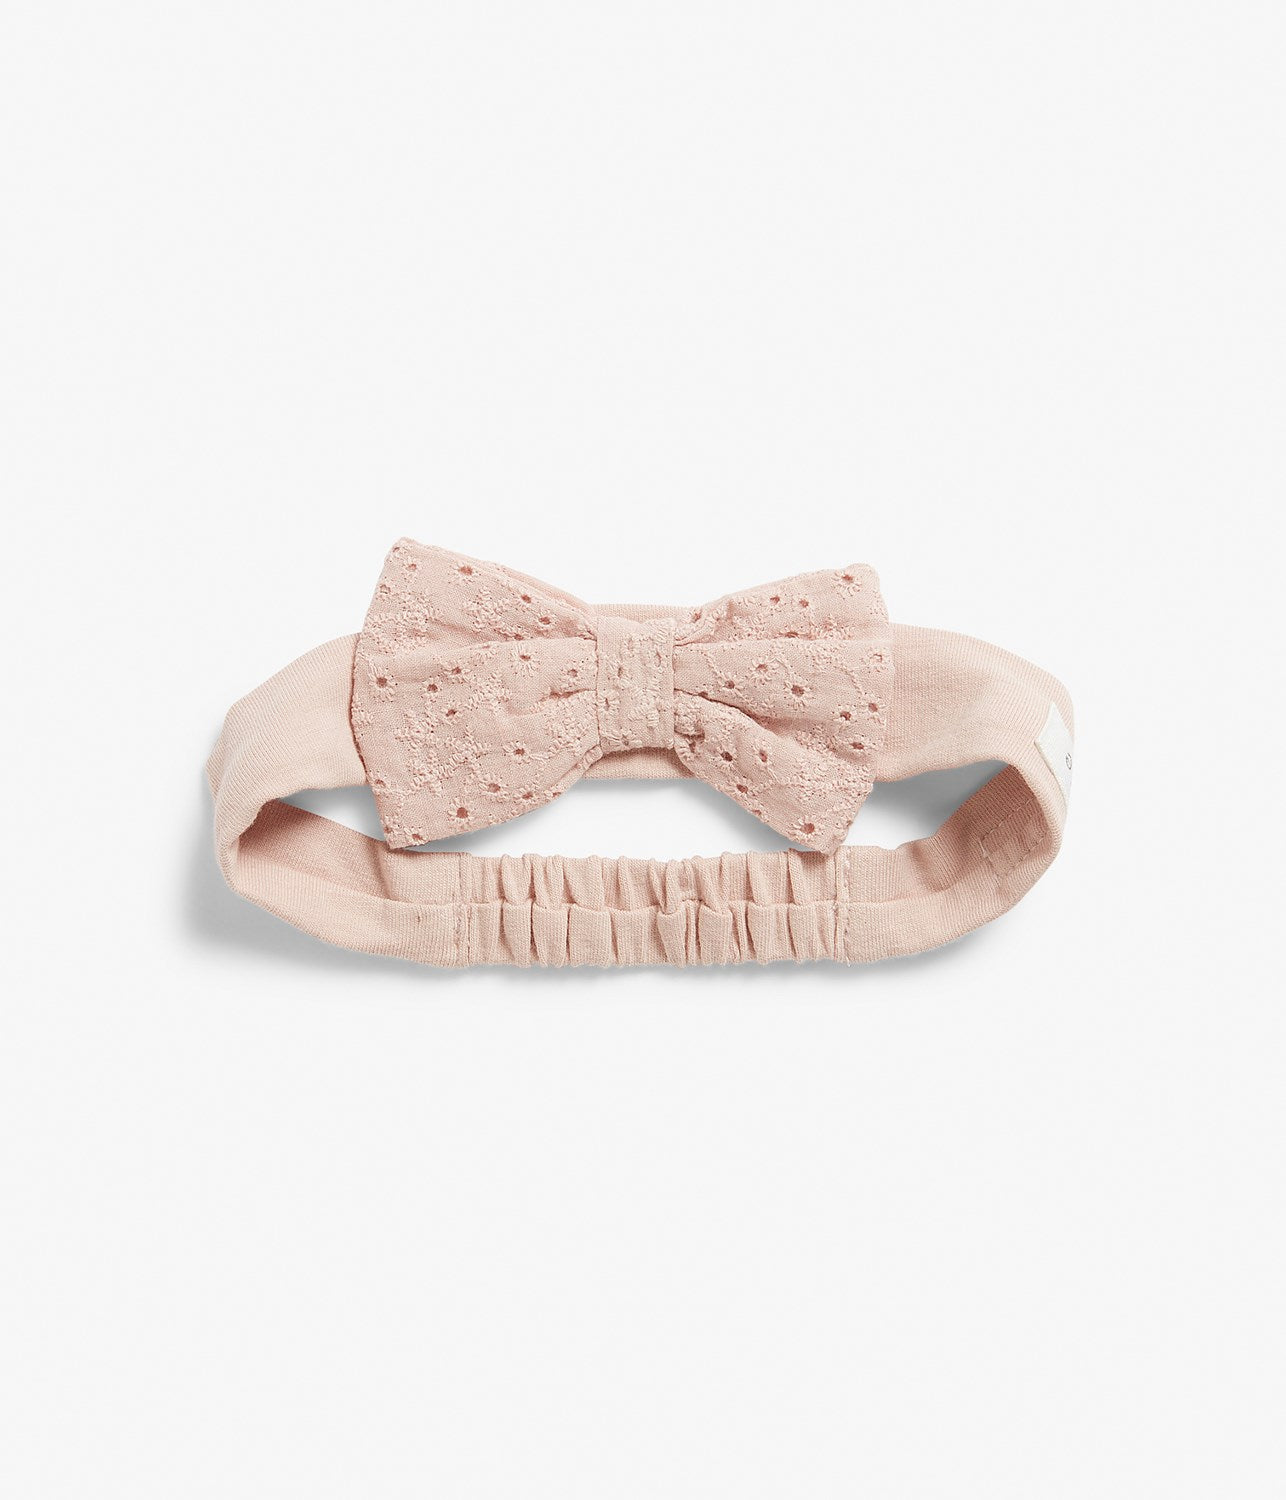 One-size pink lace headband with bow